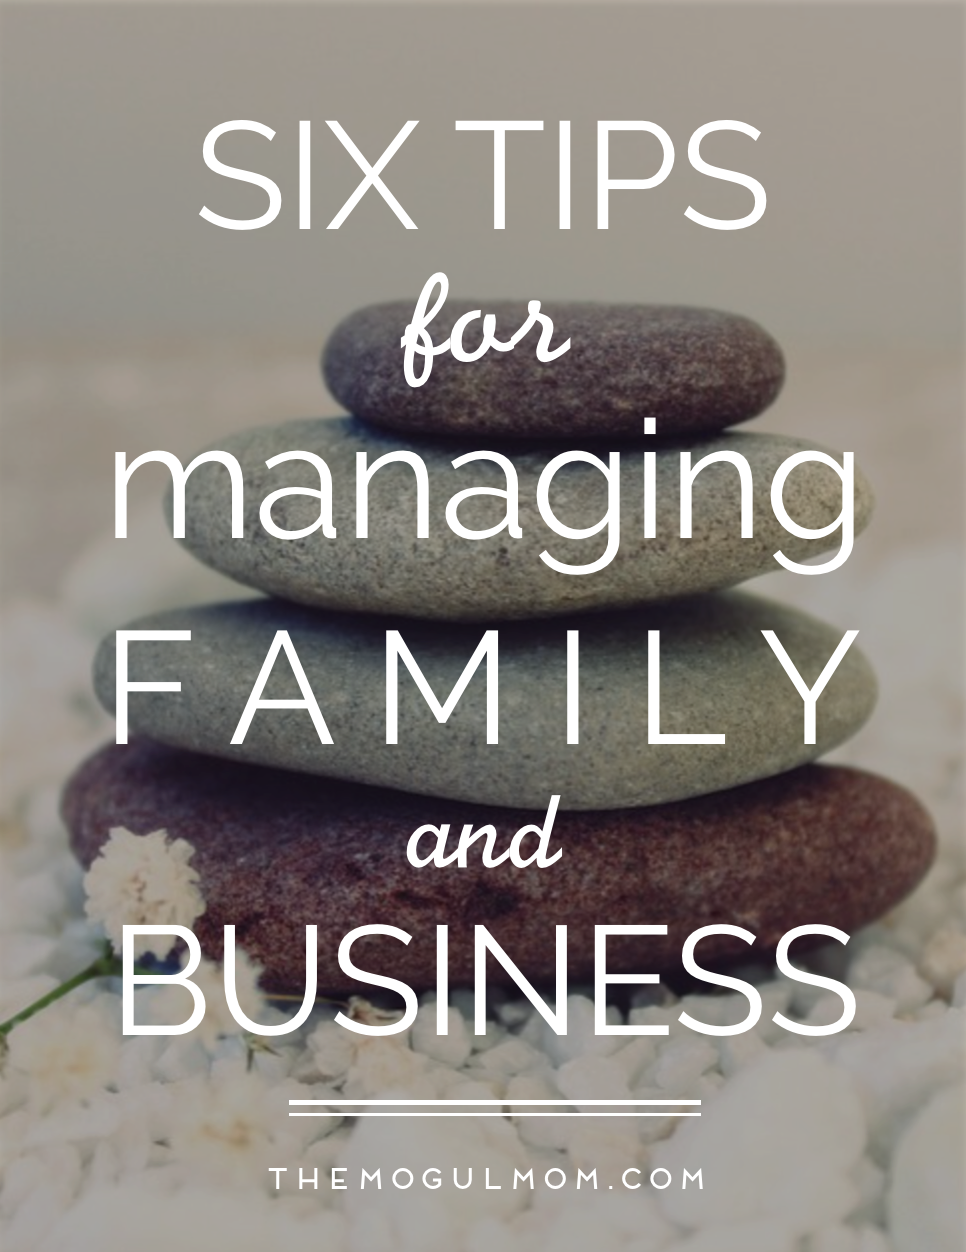 6 Tips for Managing Family and Business